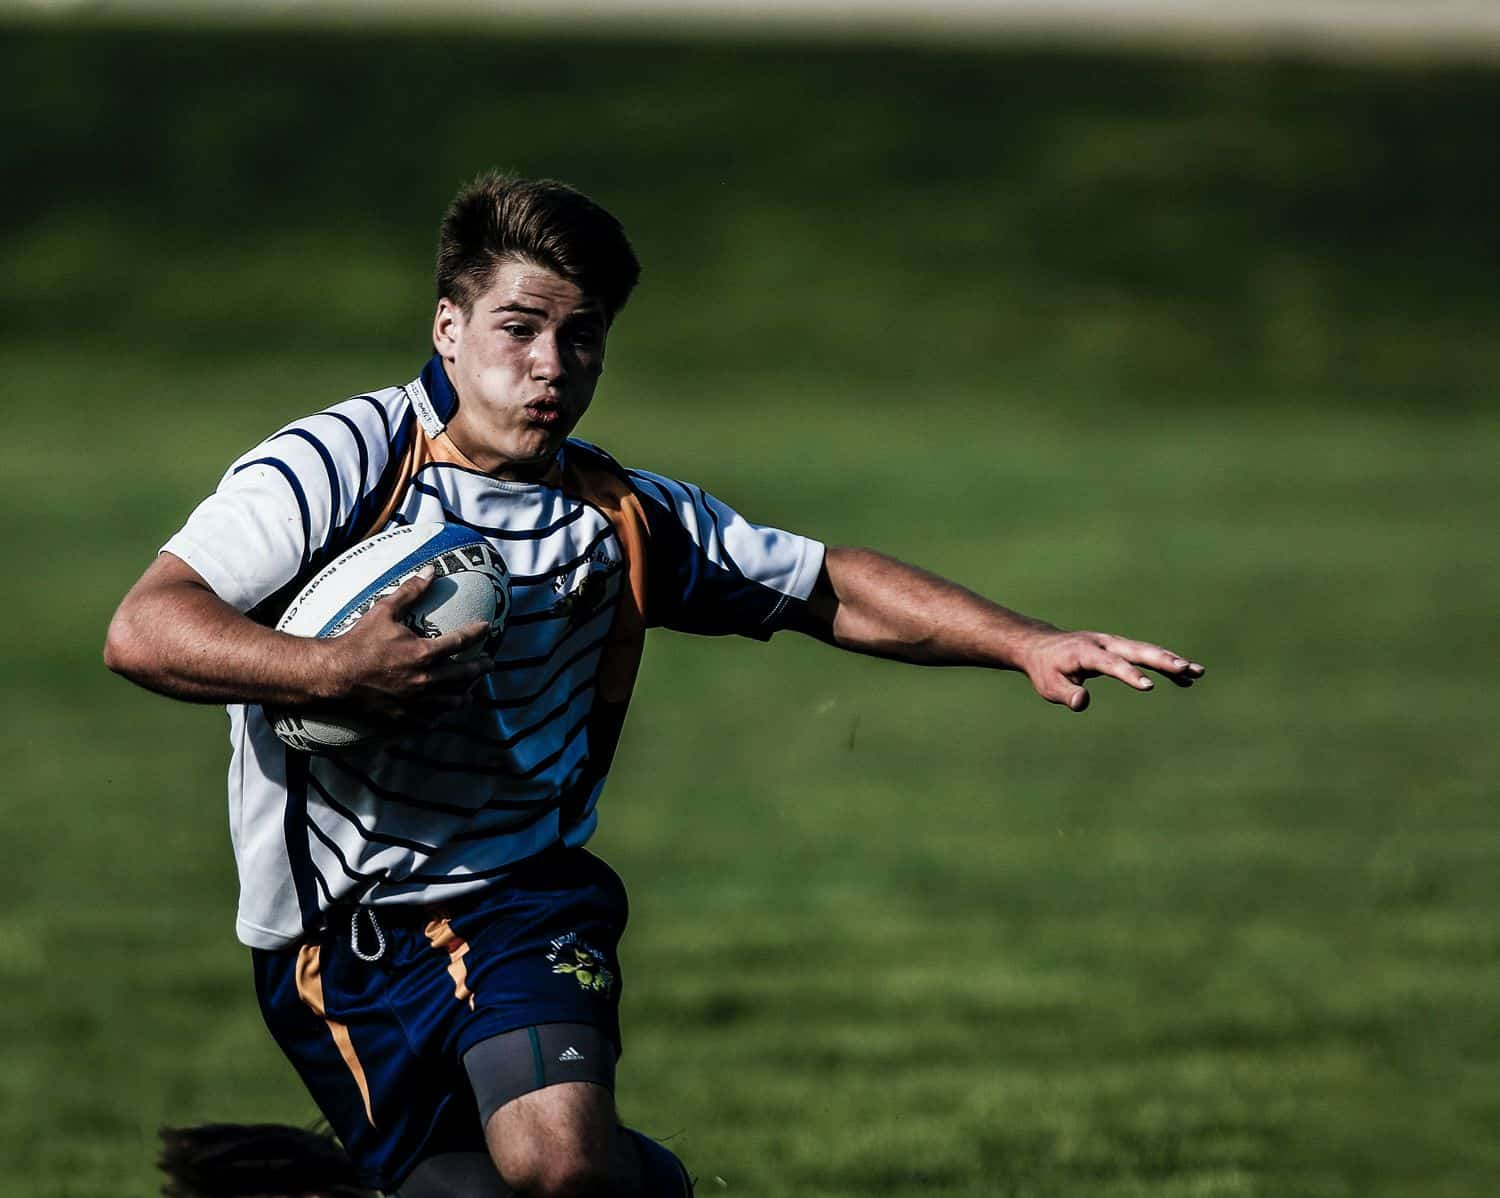 A rugby player running with ball